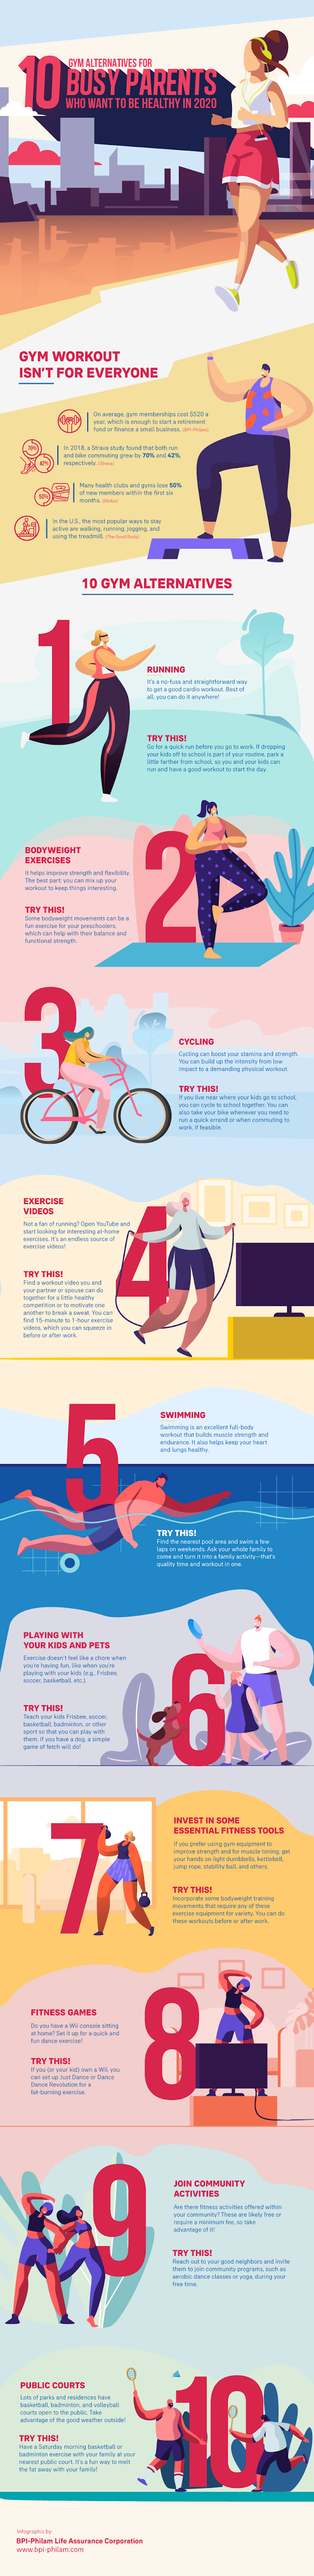 10 Gym Alternatives For Busy Parents Who Want To Be Fit/healthy In 2020 #infographic #infographic #Health & Fitness #Gym #Parents